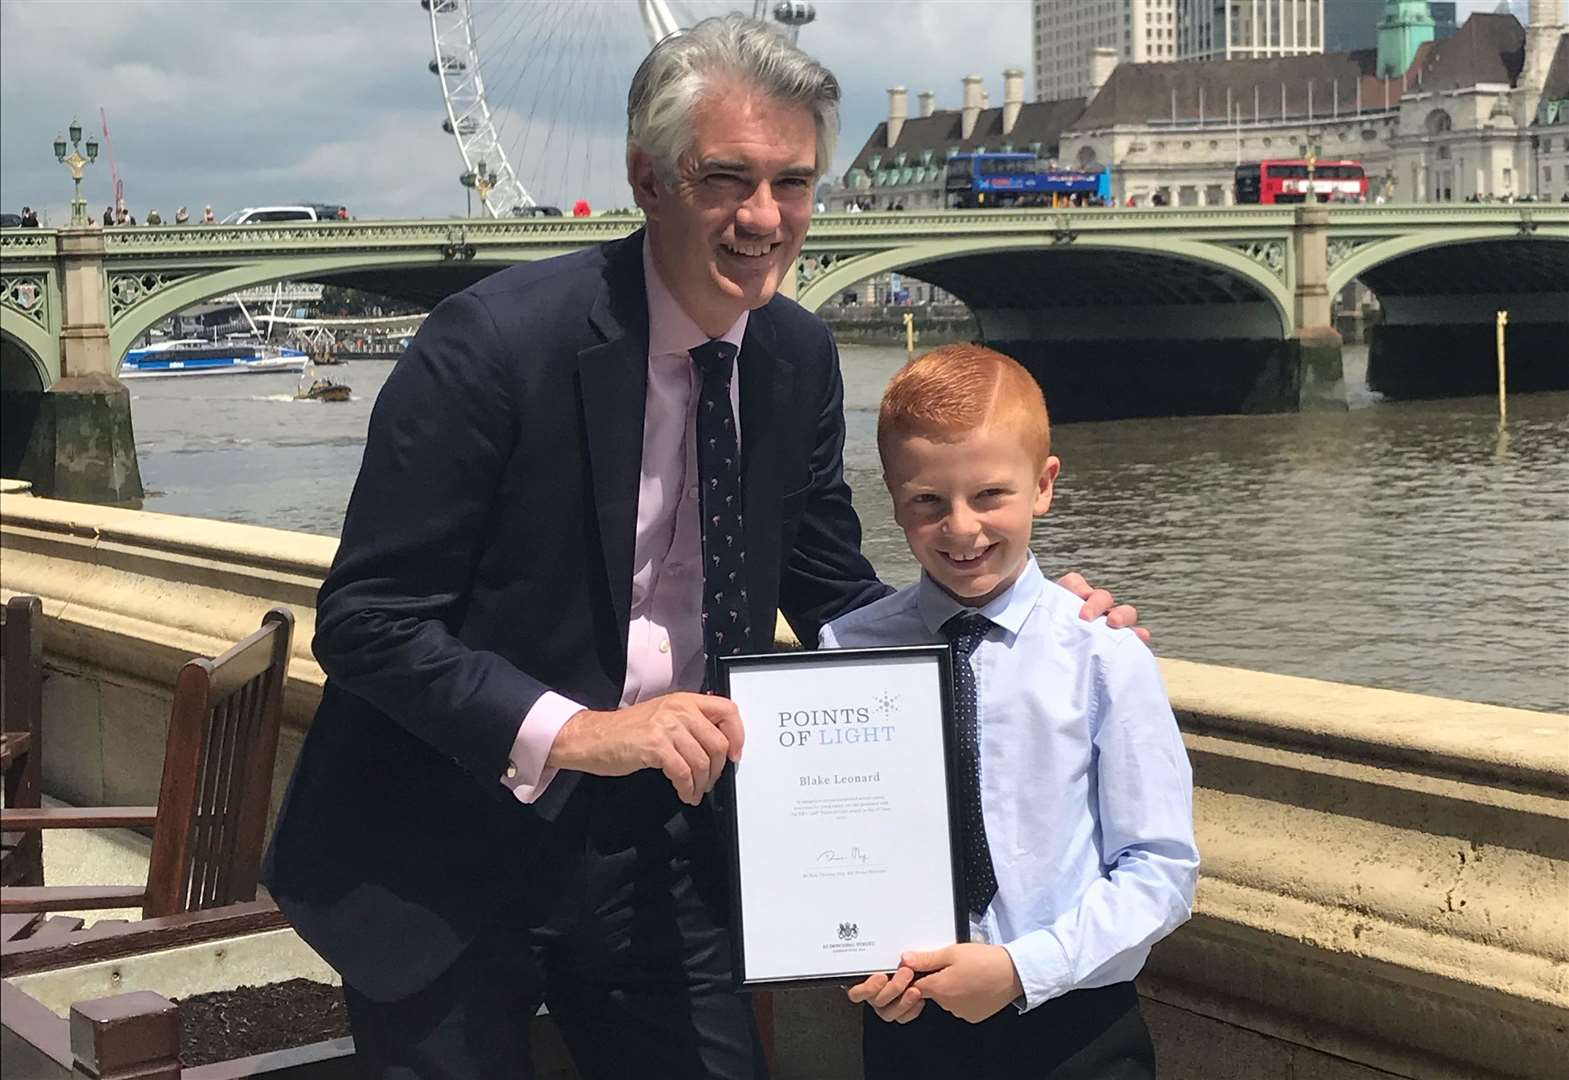 Long Melford boy recognised by Number 10 for sharing experience helping mother with MS